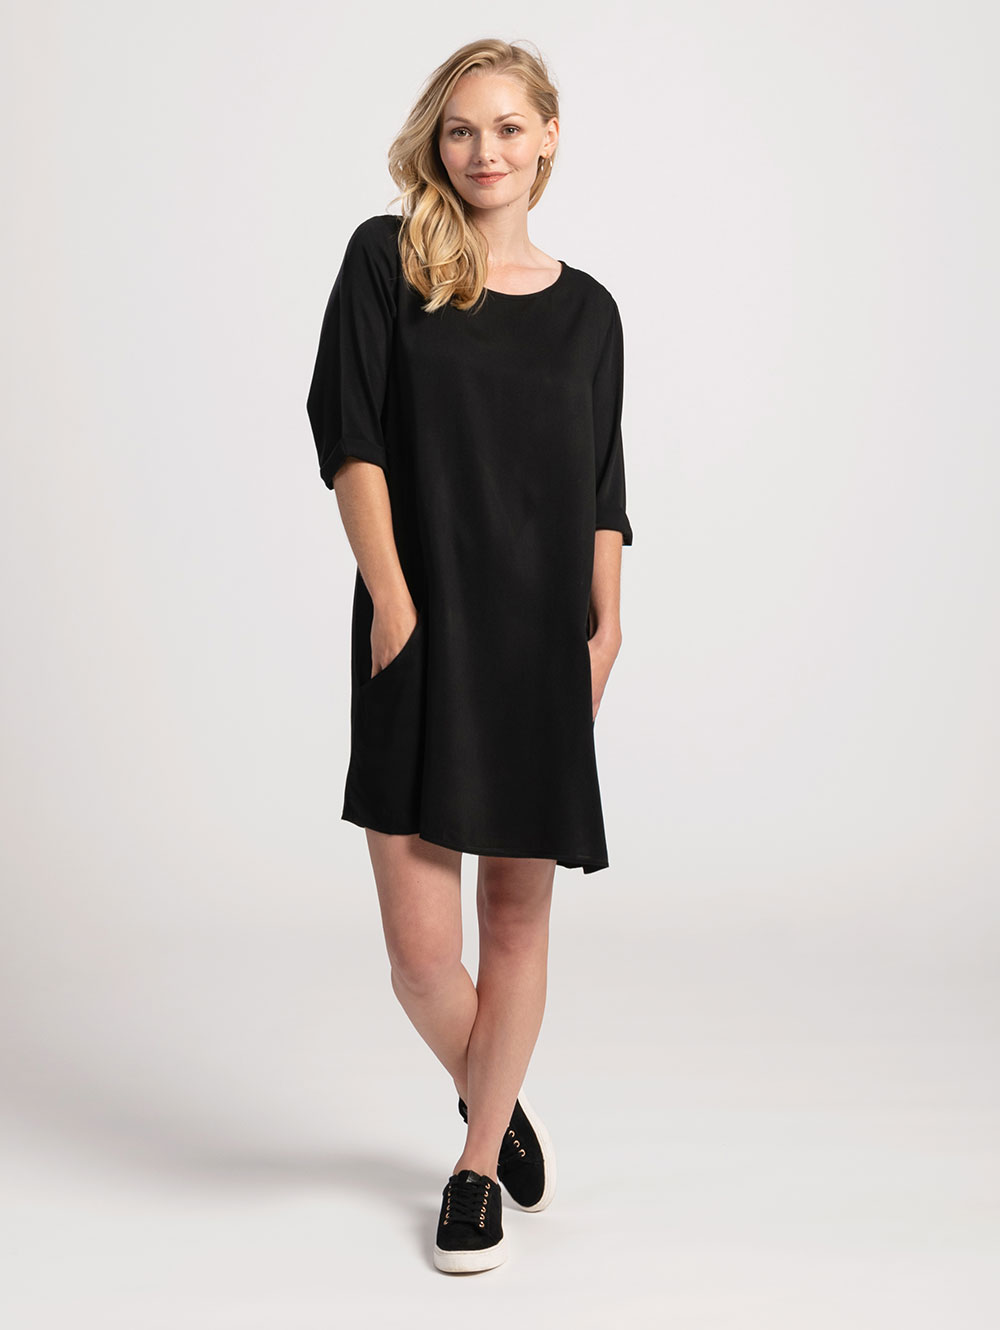 Pocket Dress in Black